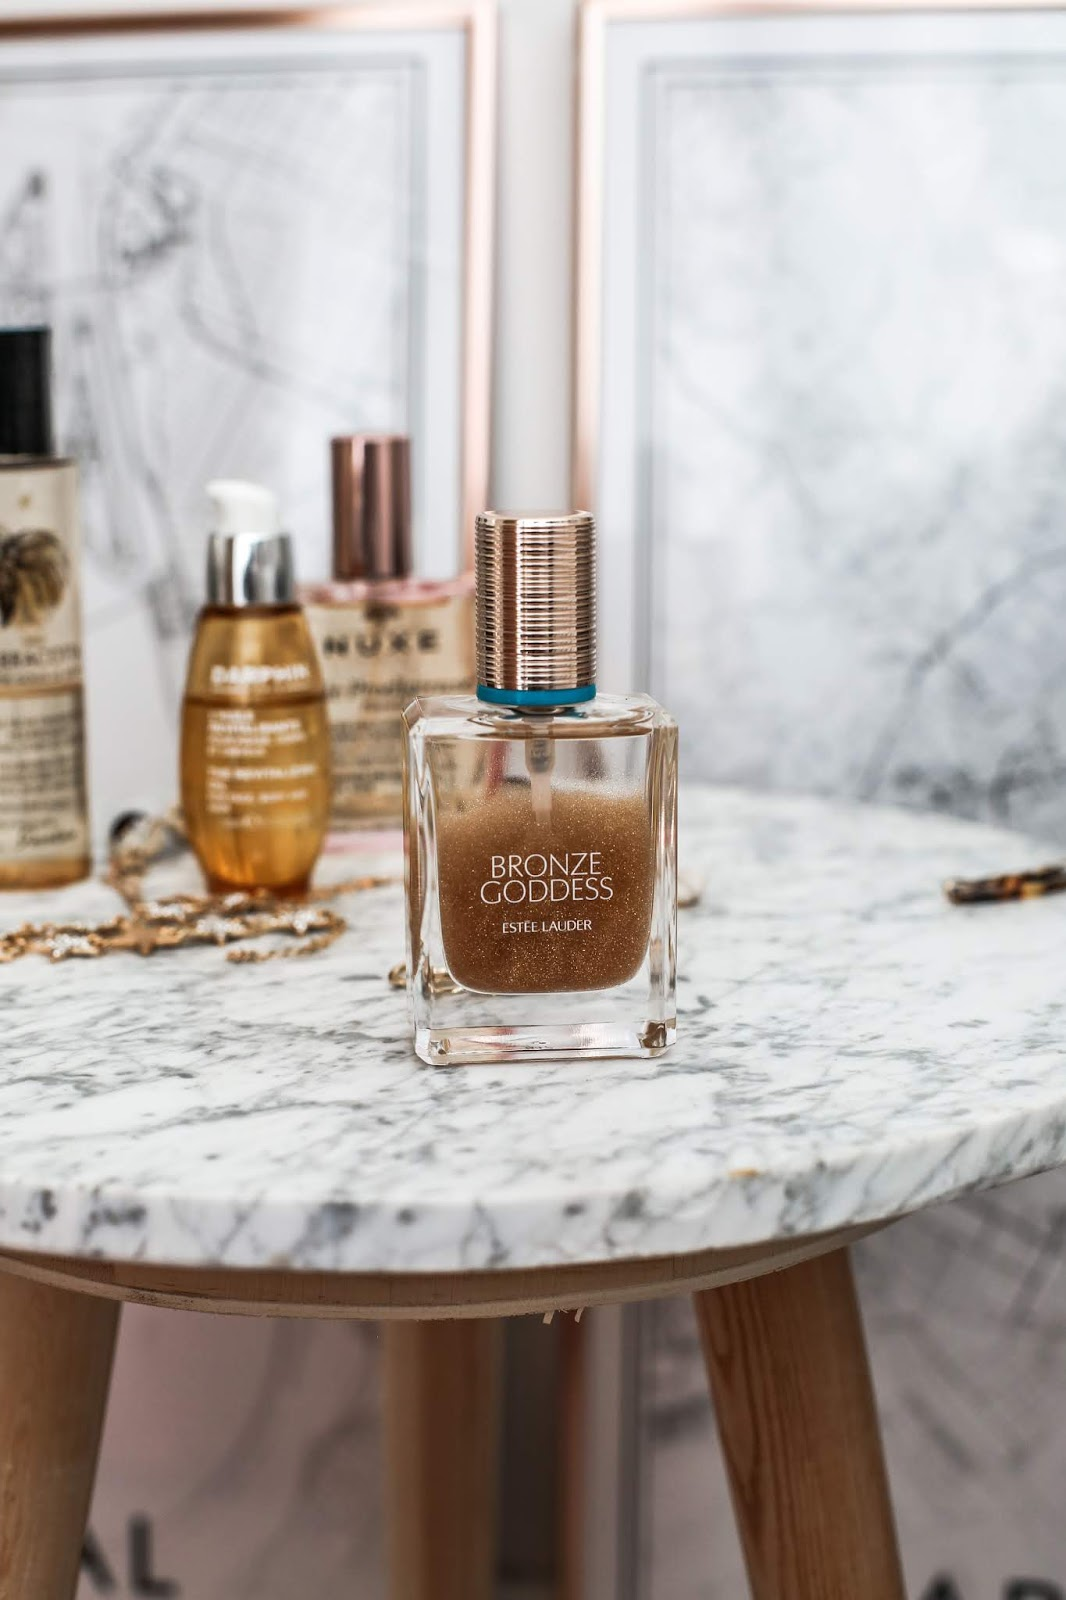 Estee Lauder Bronze Goddess Body Oil